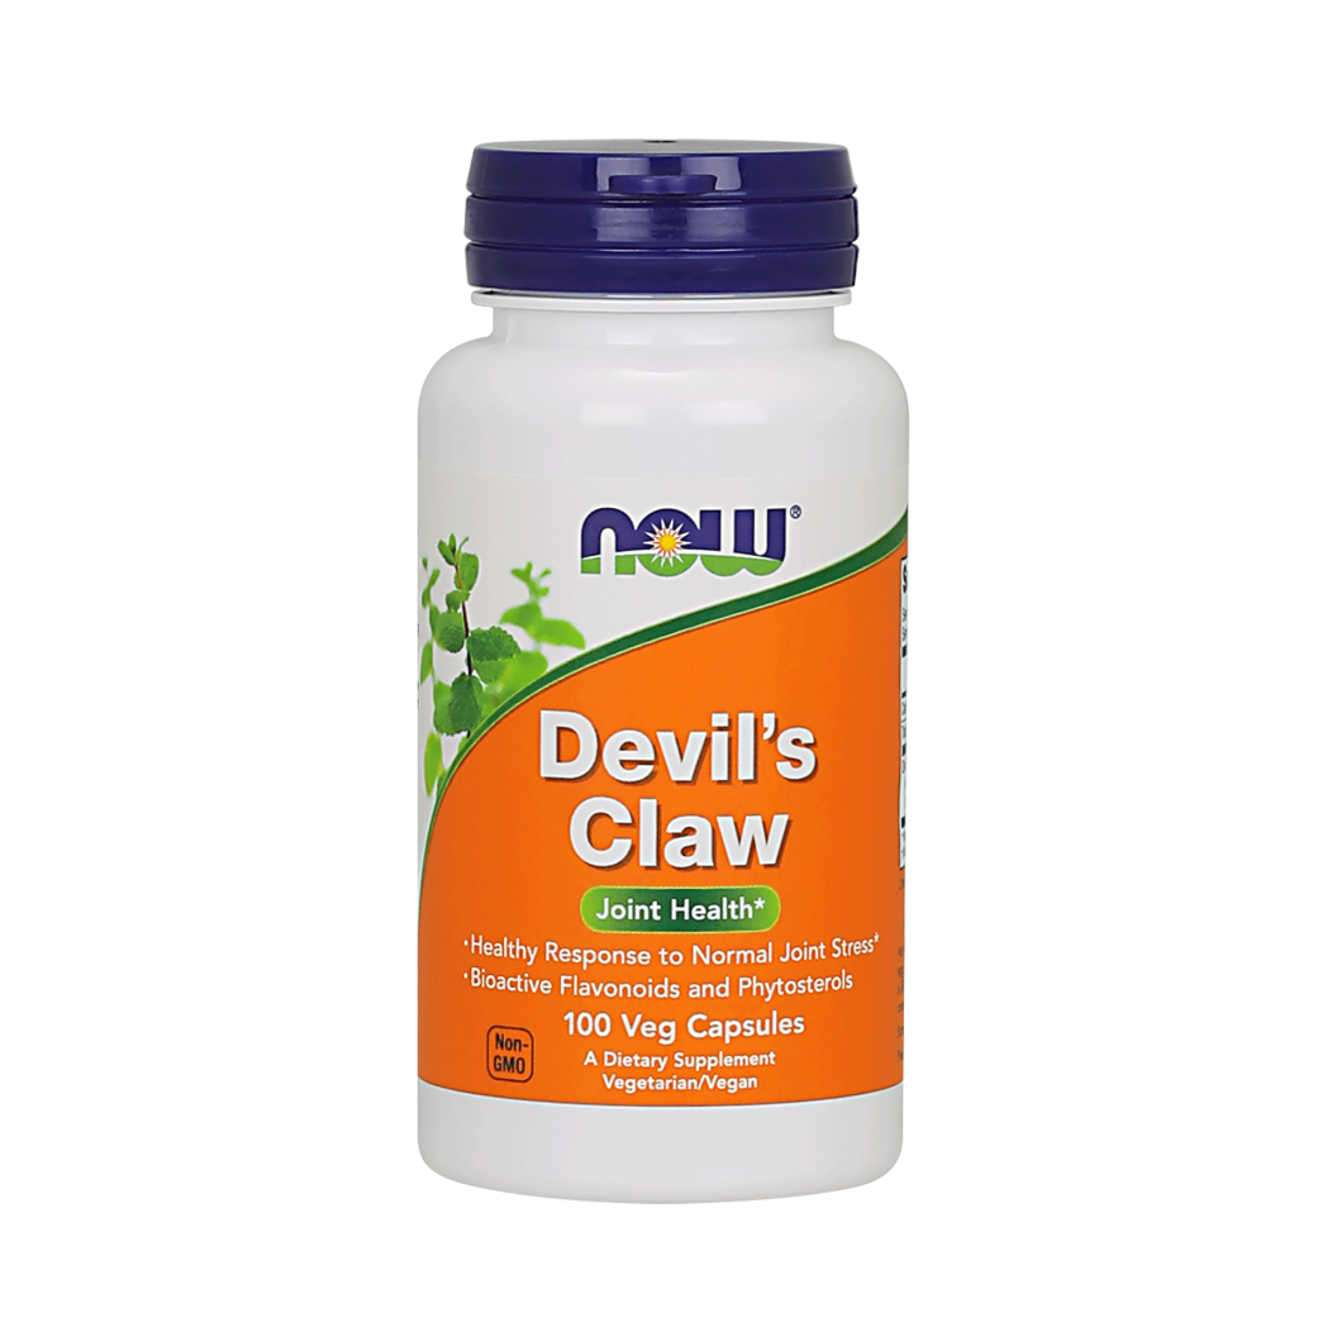 DEVIL'S CLAW - 100 veg caps